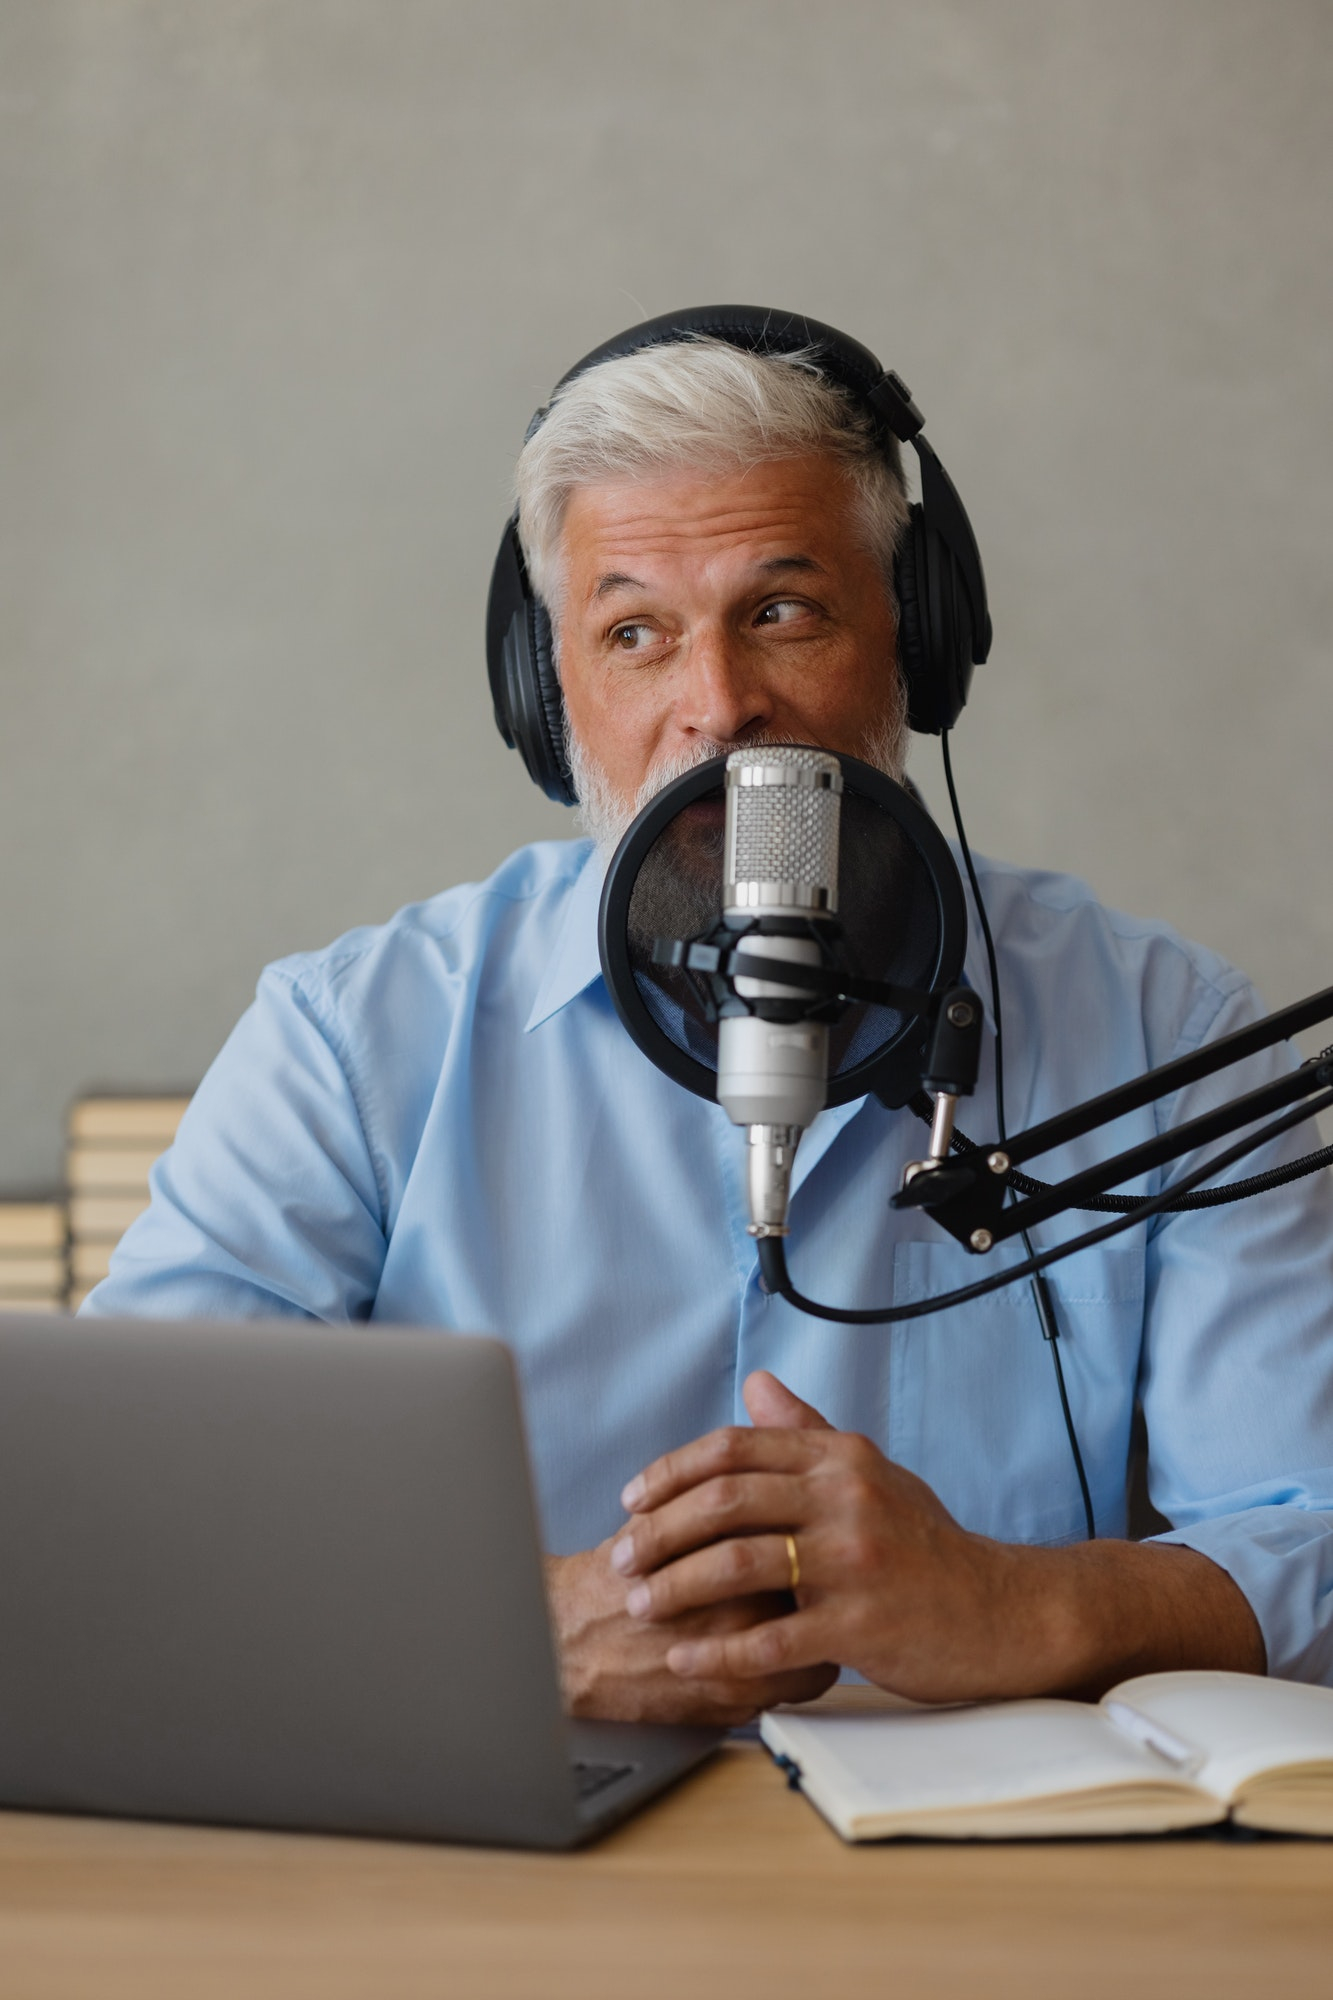 male podcaster in blue shirt, happy seniors recording their voice for an audio book